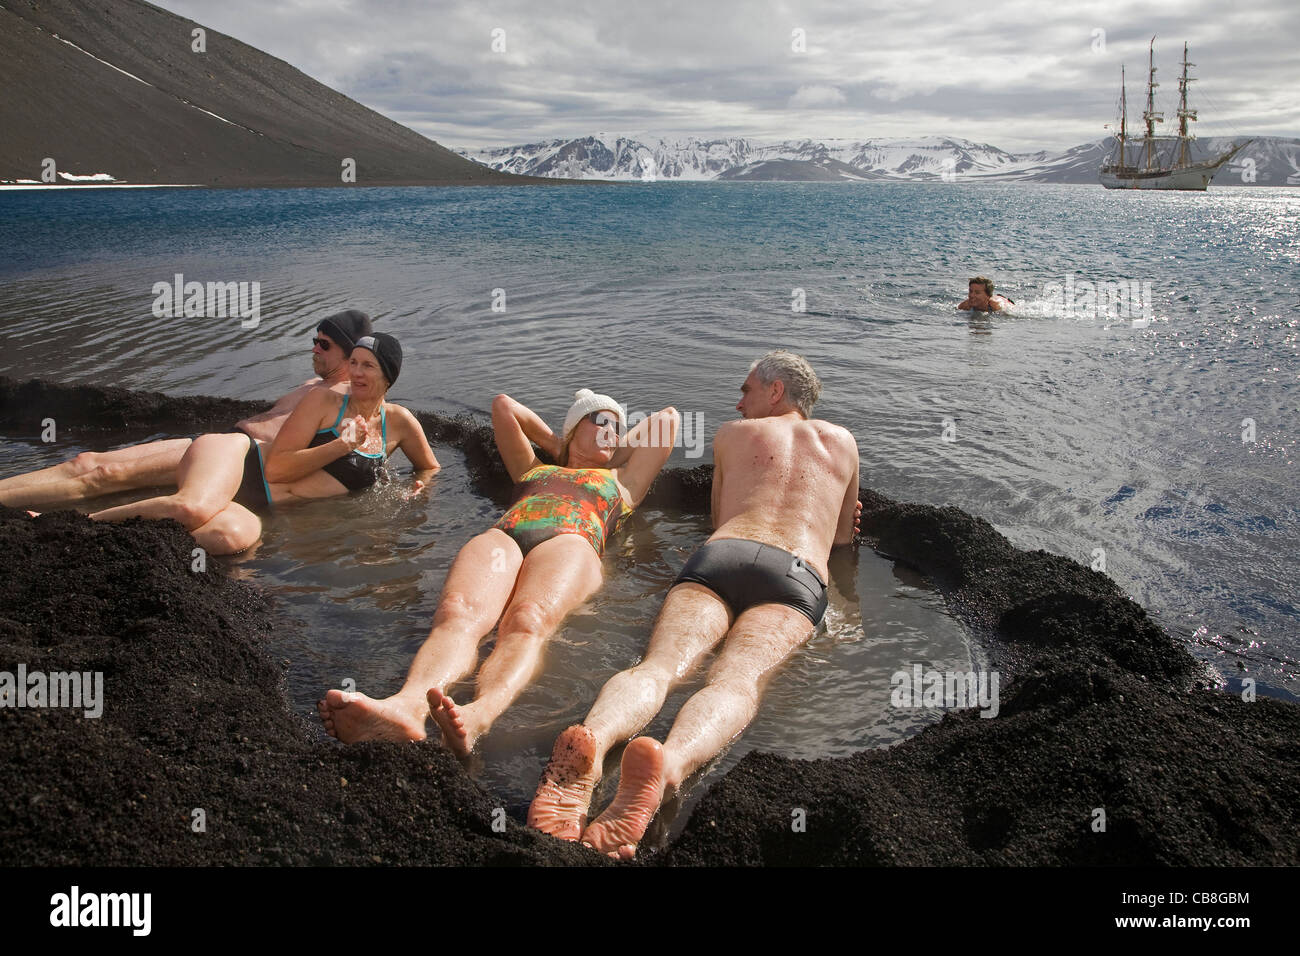 Tourists bathing in hot tub with volcanically heated water, Pendulum Cove, Deception Island, South Shetland Islands, - Stock Image